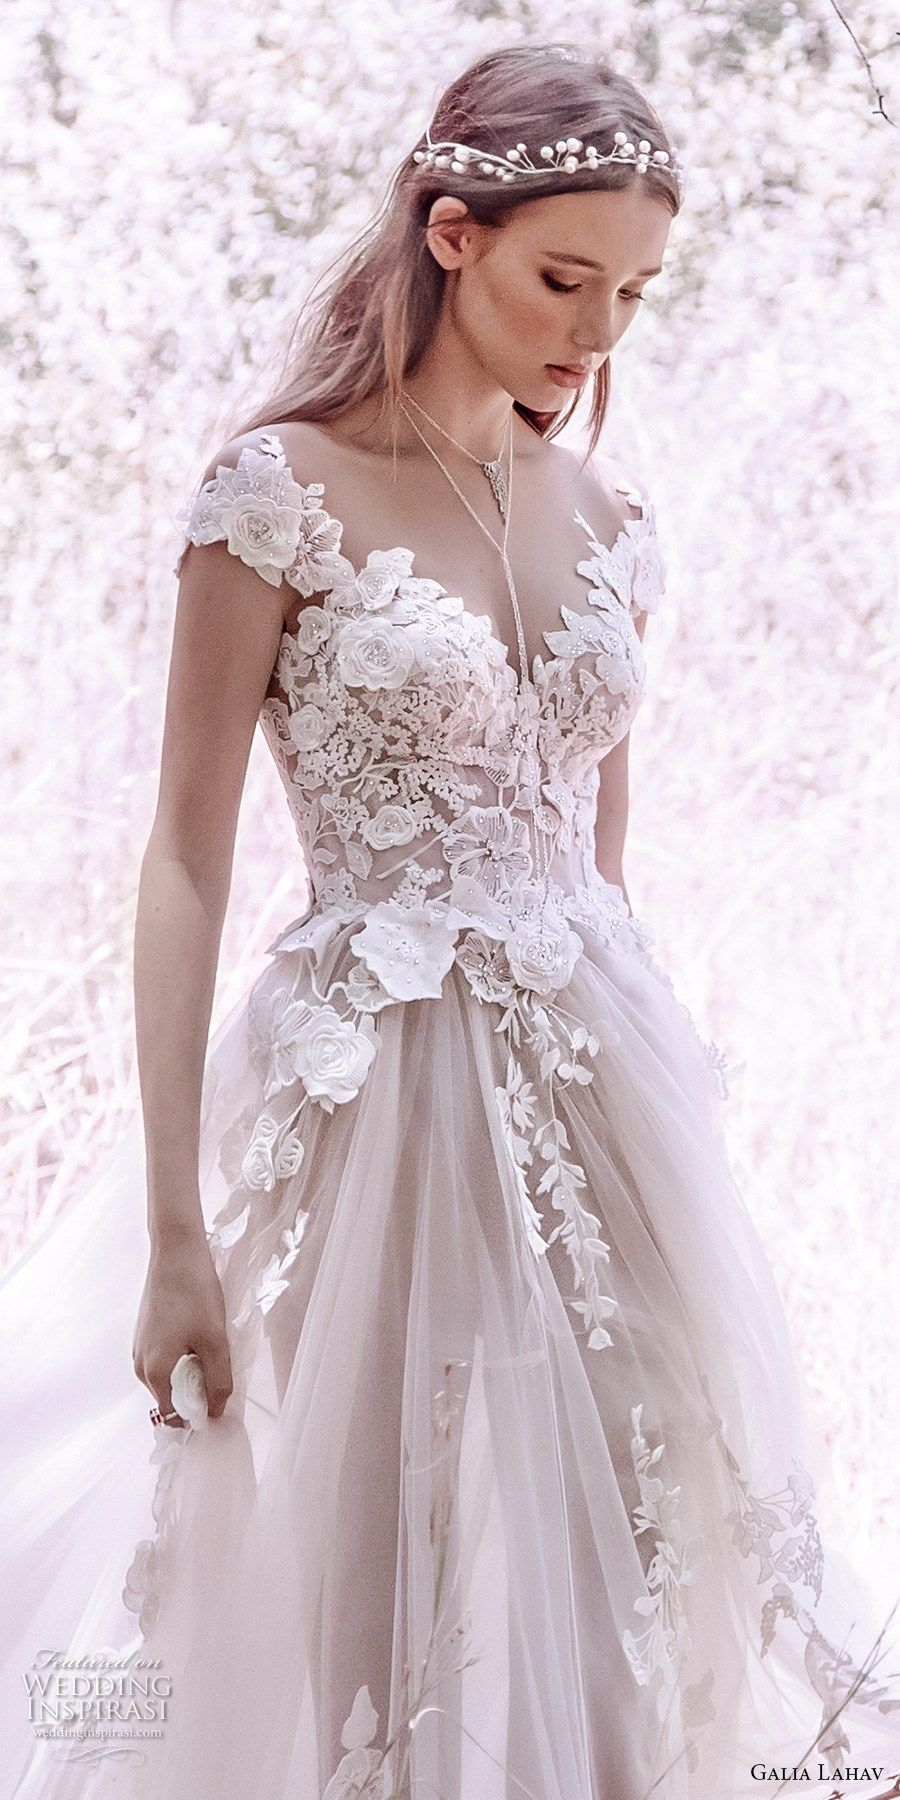 Gala by galia lahav wedding dresses irish wedding ideas